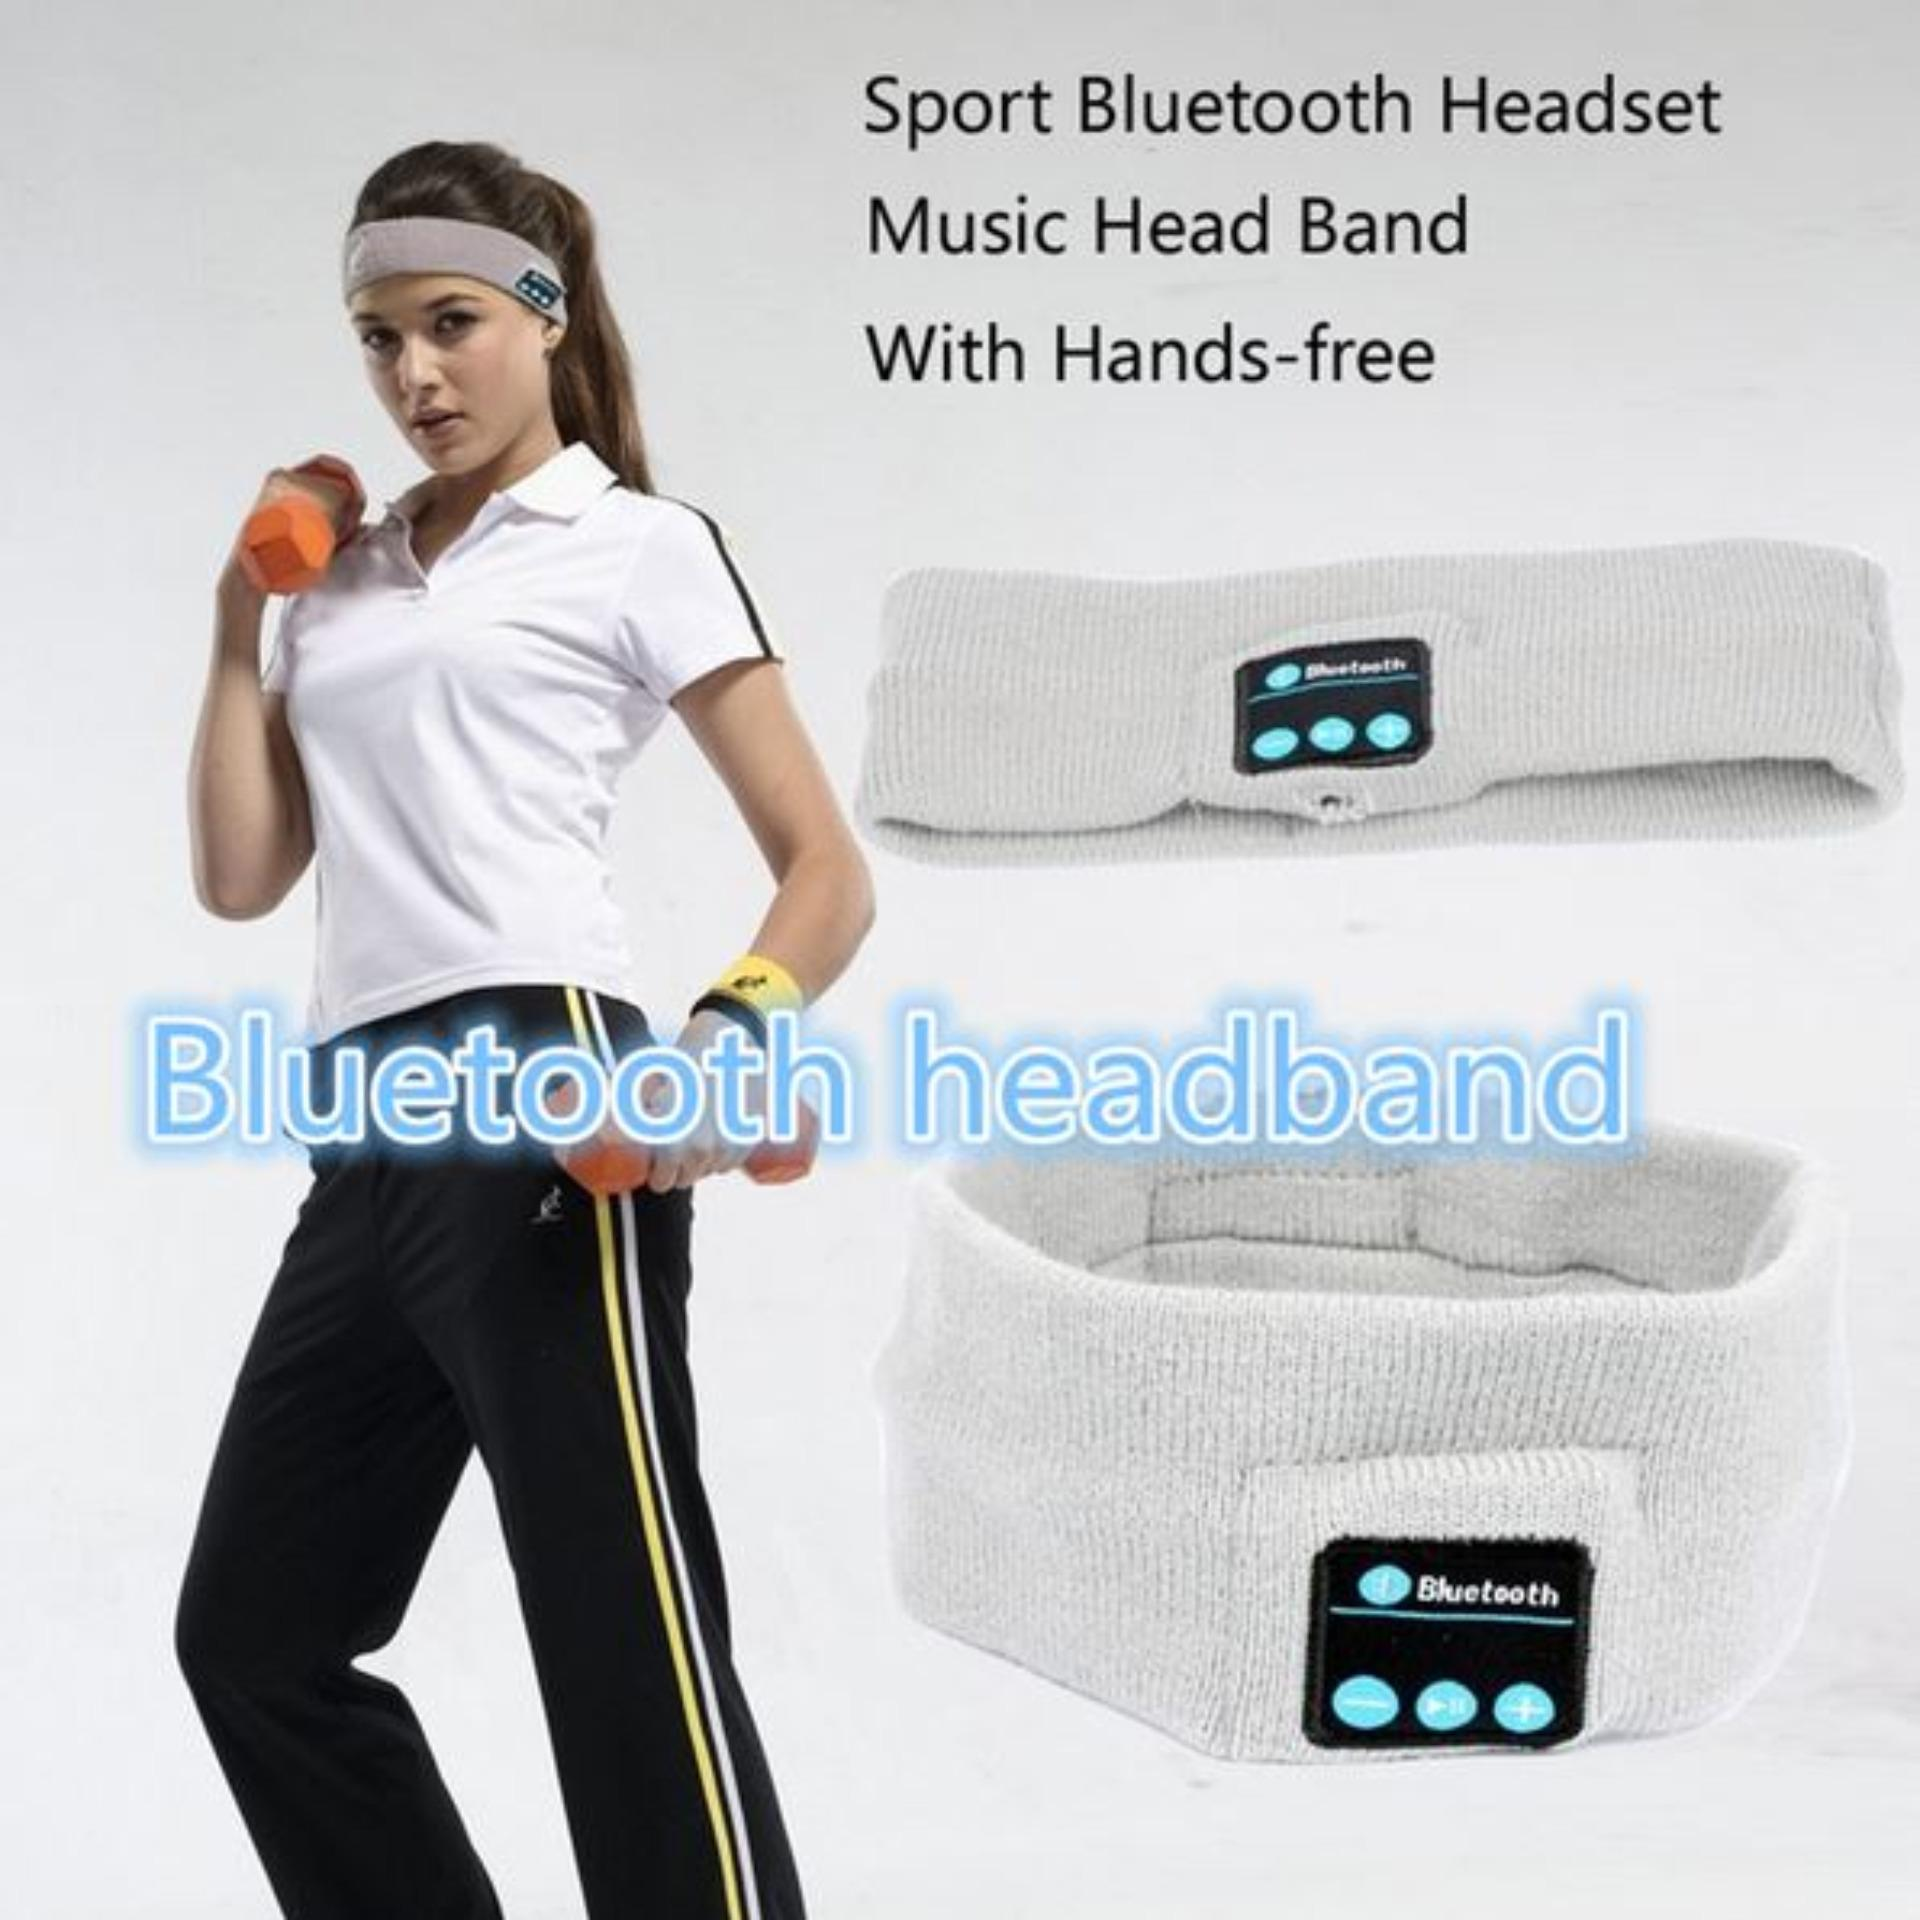 Toko Best Hat Headband Olahraga Musik Stereo Bluetooth Earphone Built In Microphone Earphone Topi Wireless Bluetooth Headband Termurah Banten